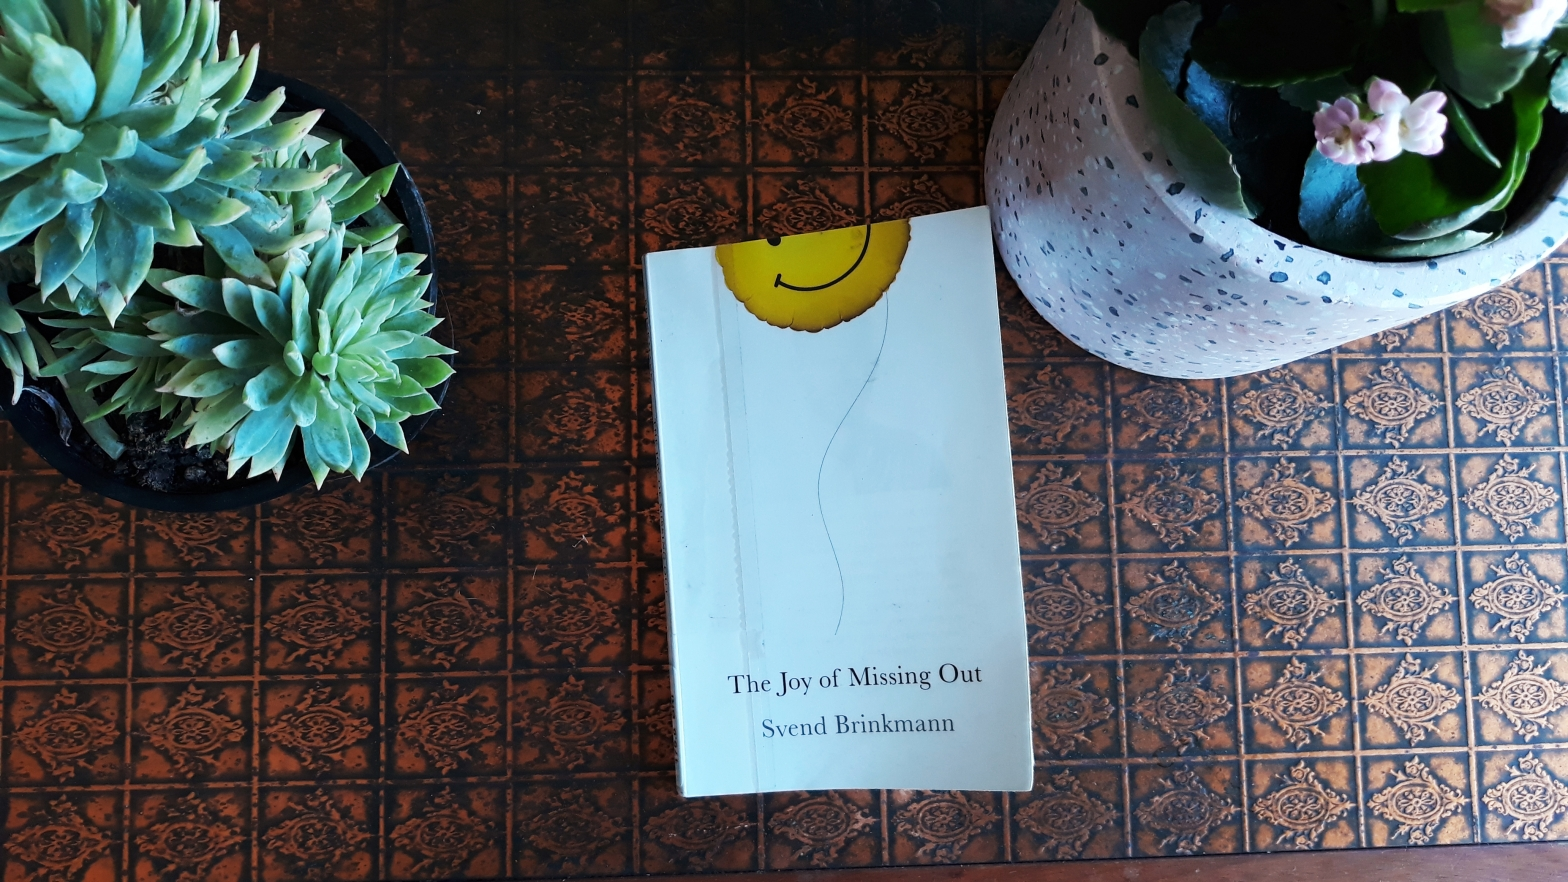 The Joy of Missing Out by Svend Brinkmann